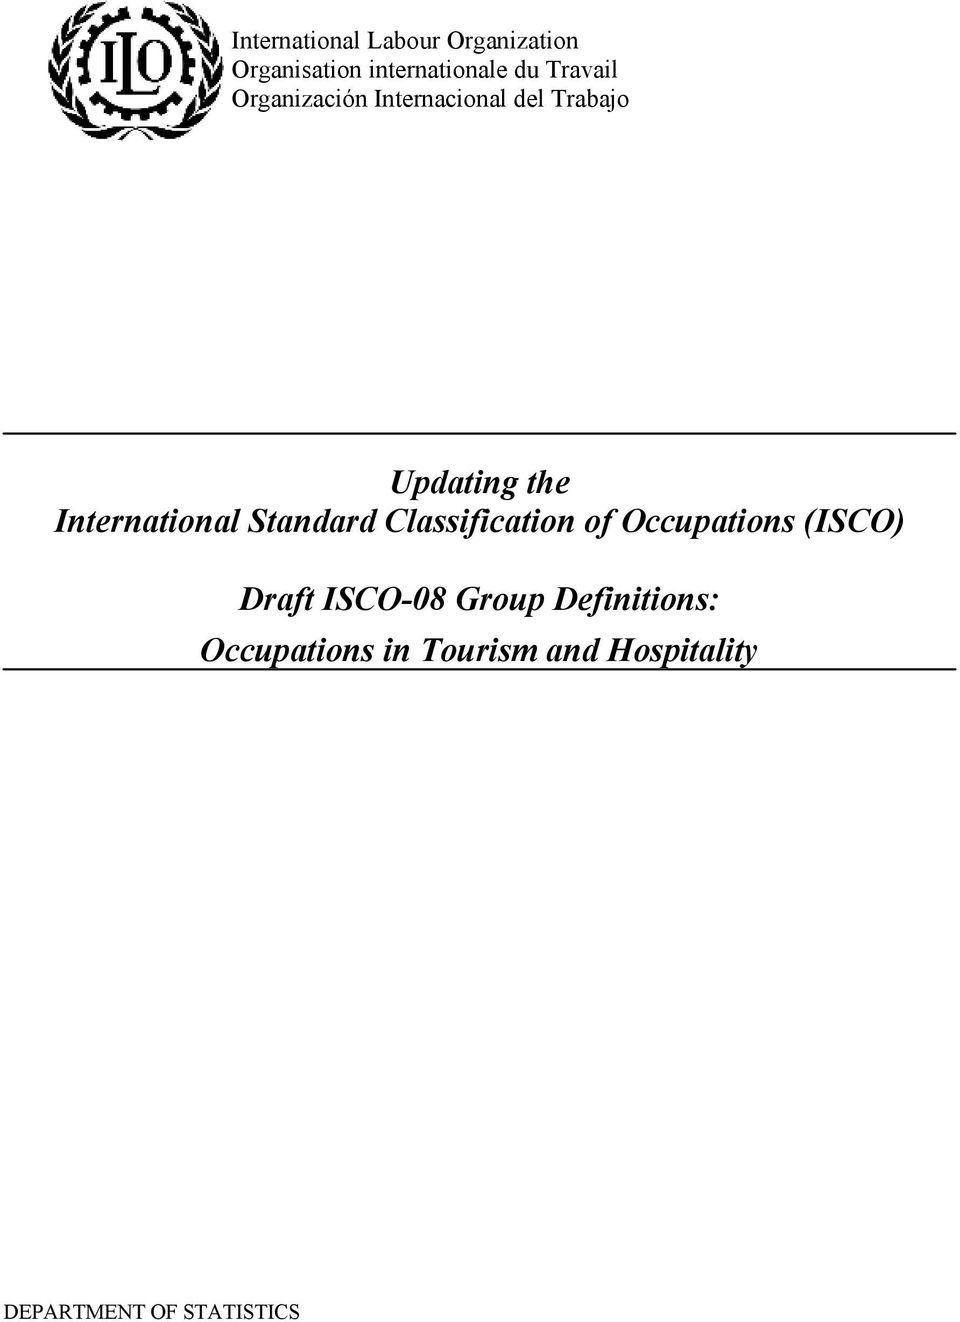 International Standard Classification of Occupations (ISCO) Draft